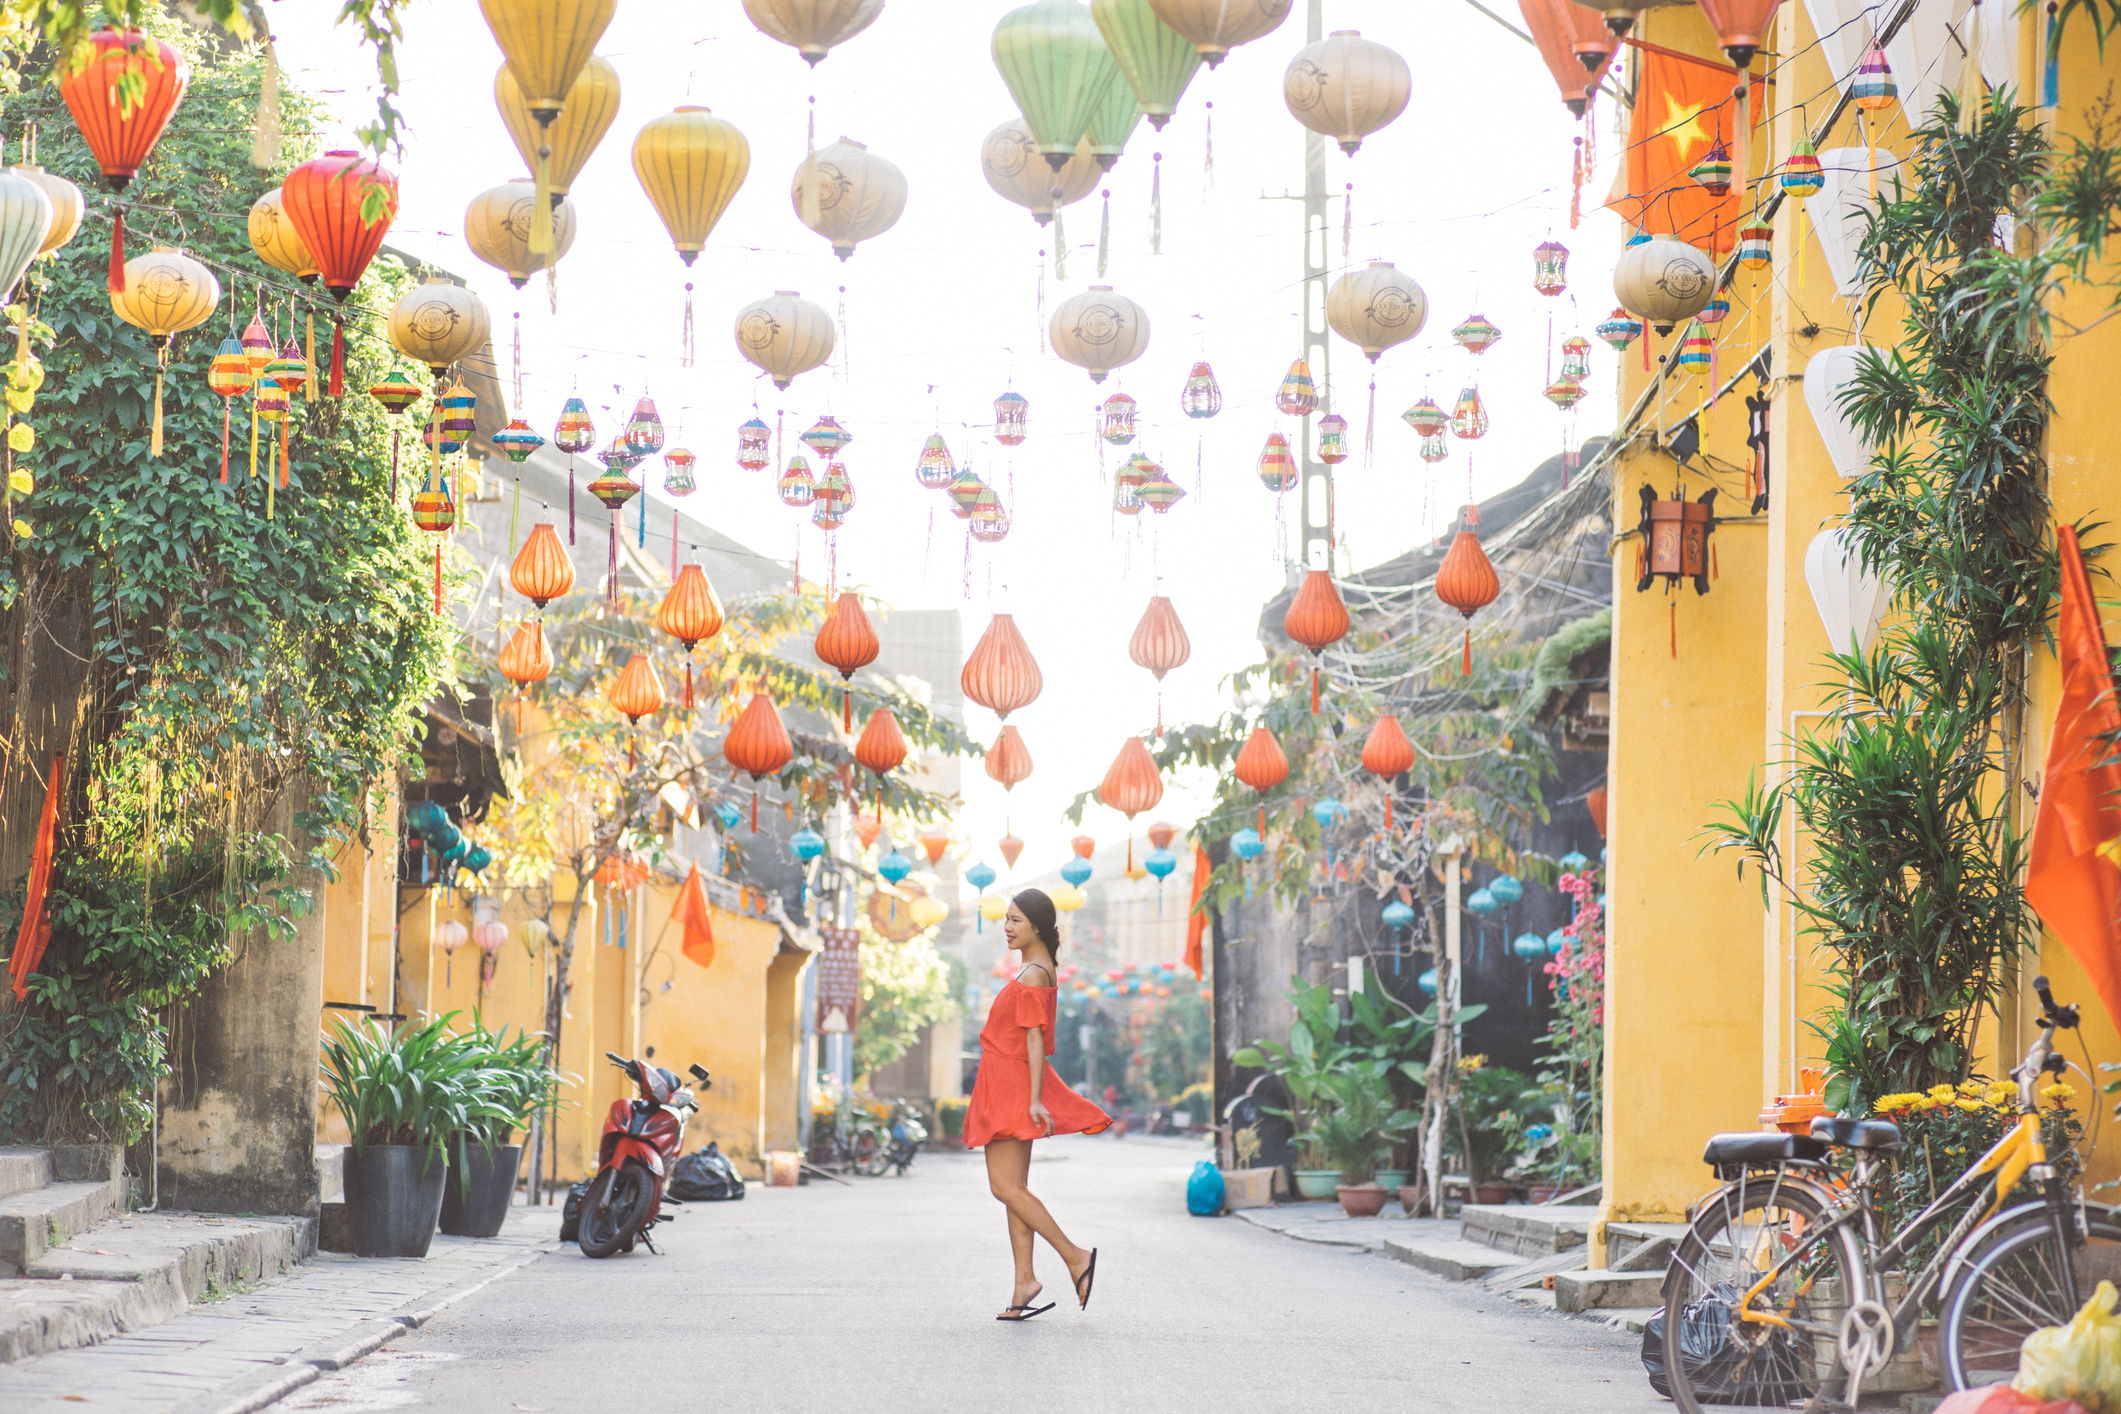 7 things you need to know before you visit Hoi An in Vietnam